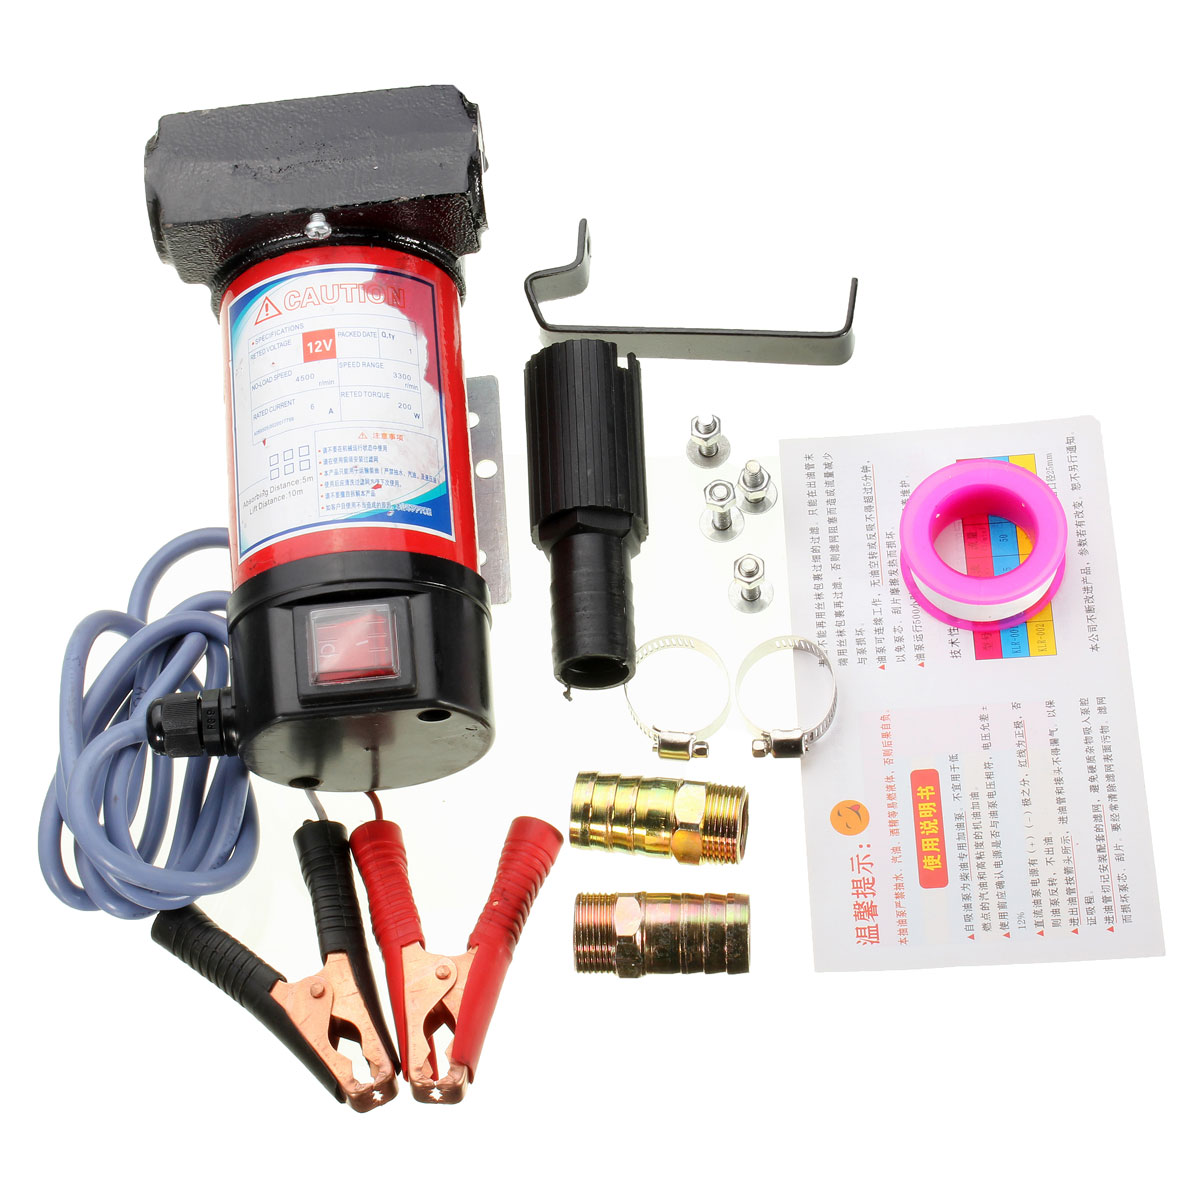 12V Portable Electric Cast iron Pump for Diesel Oil Transfer Pump 40L/Min 12v high lift electric diesel oil pump fuel oil transfer oil metering pump unit with digital watches